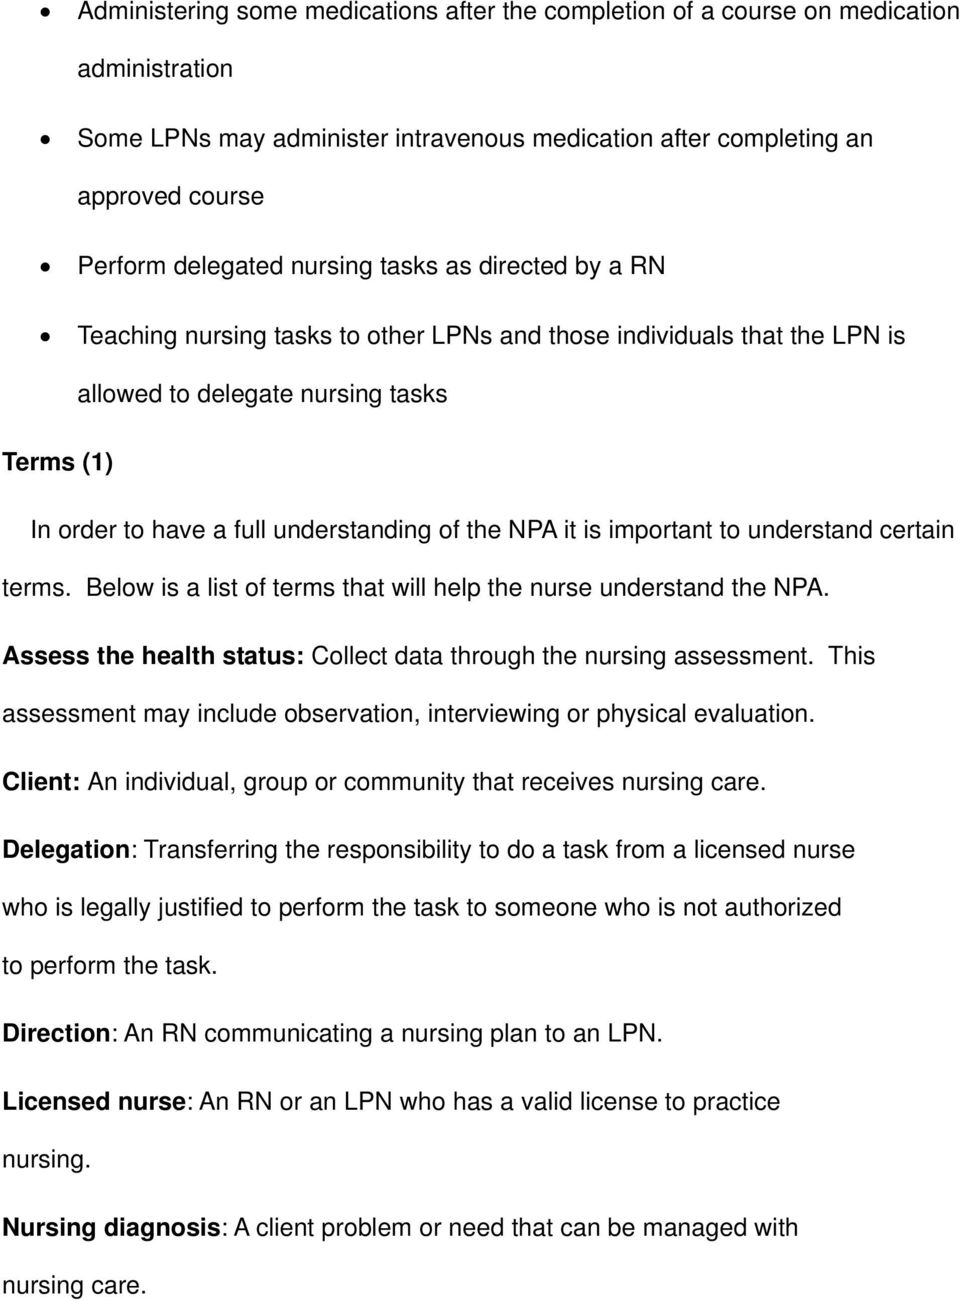 NPA it is important to understand certain terms. Below is a list of terms that will help the nurse understand the NPA. Assess the health status: Collect data through the nursing assessment.